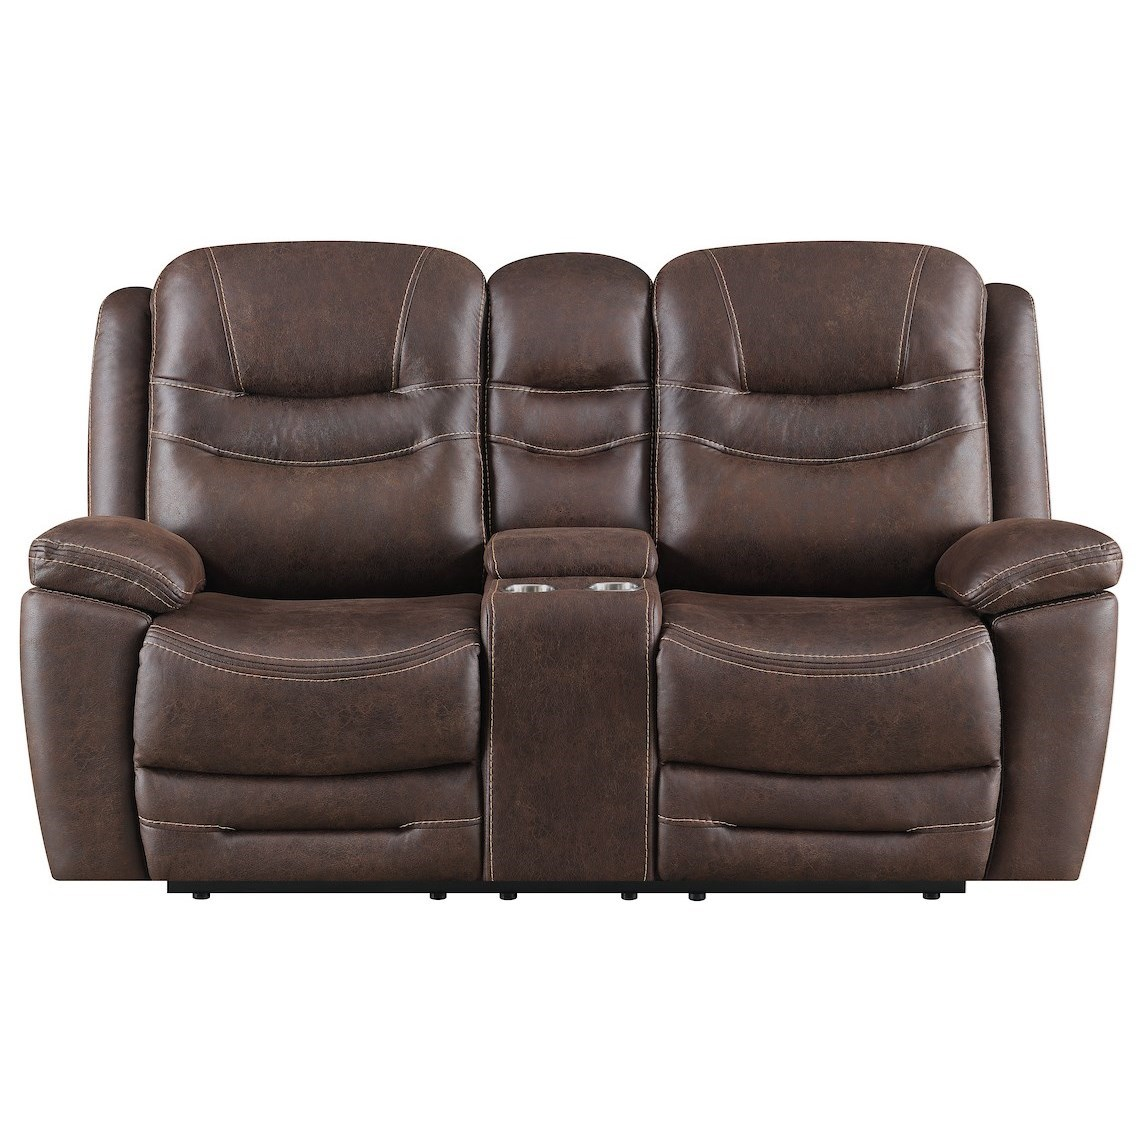 Turismo Power Reclining Console Loveseat at Walker's Furniture